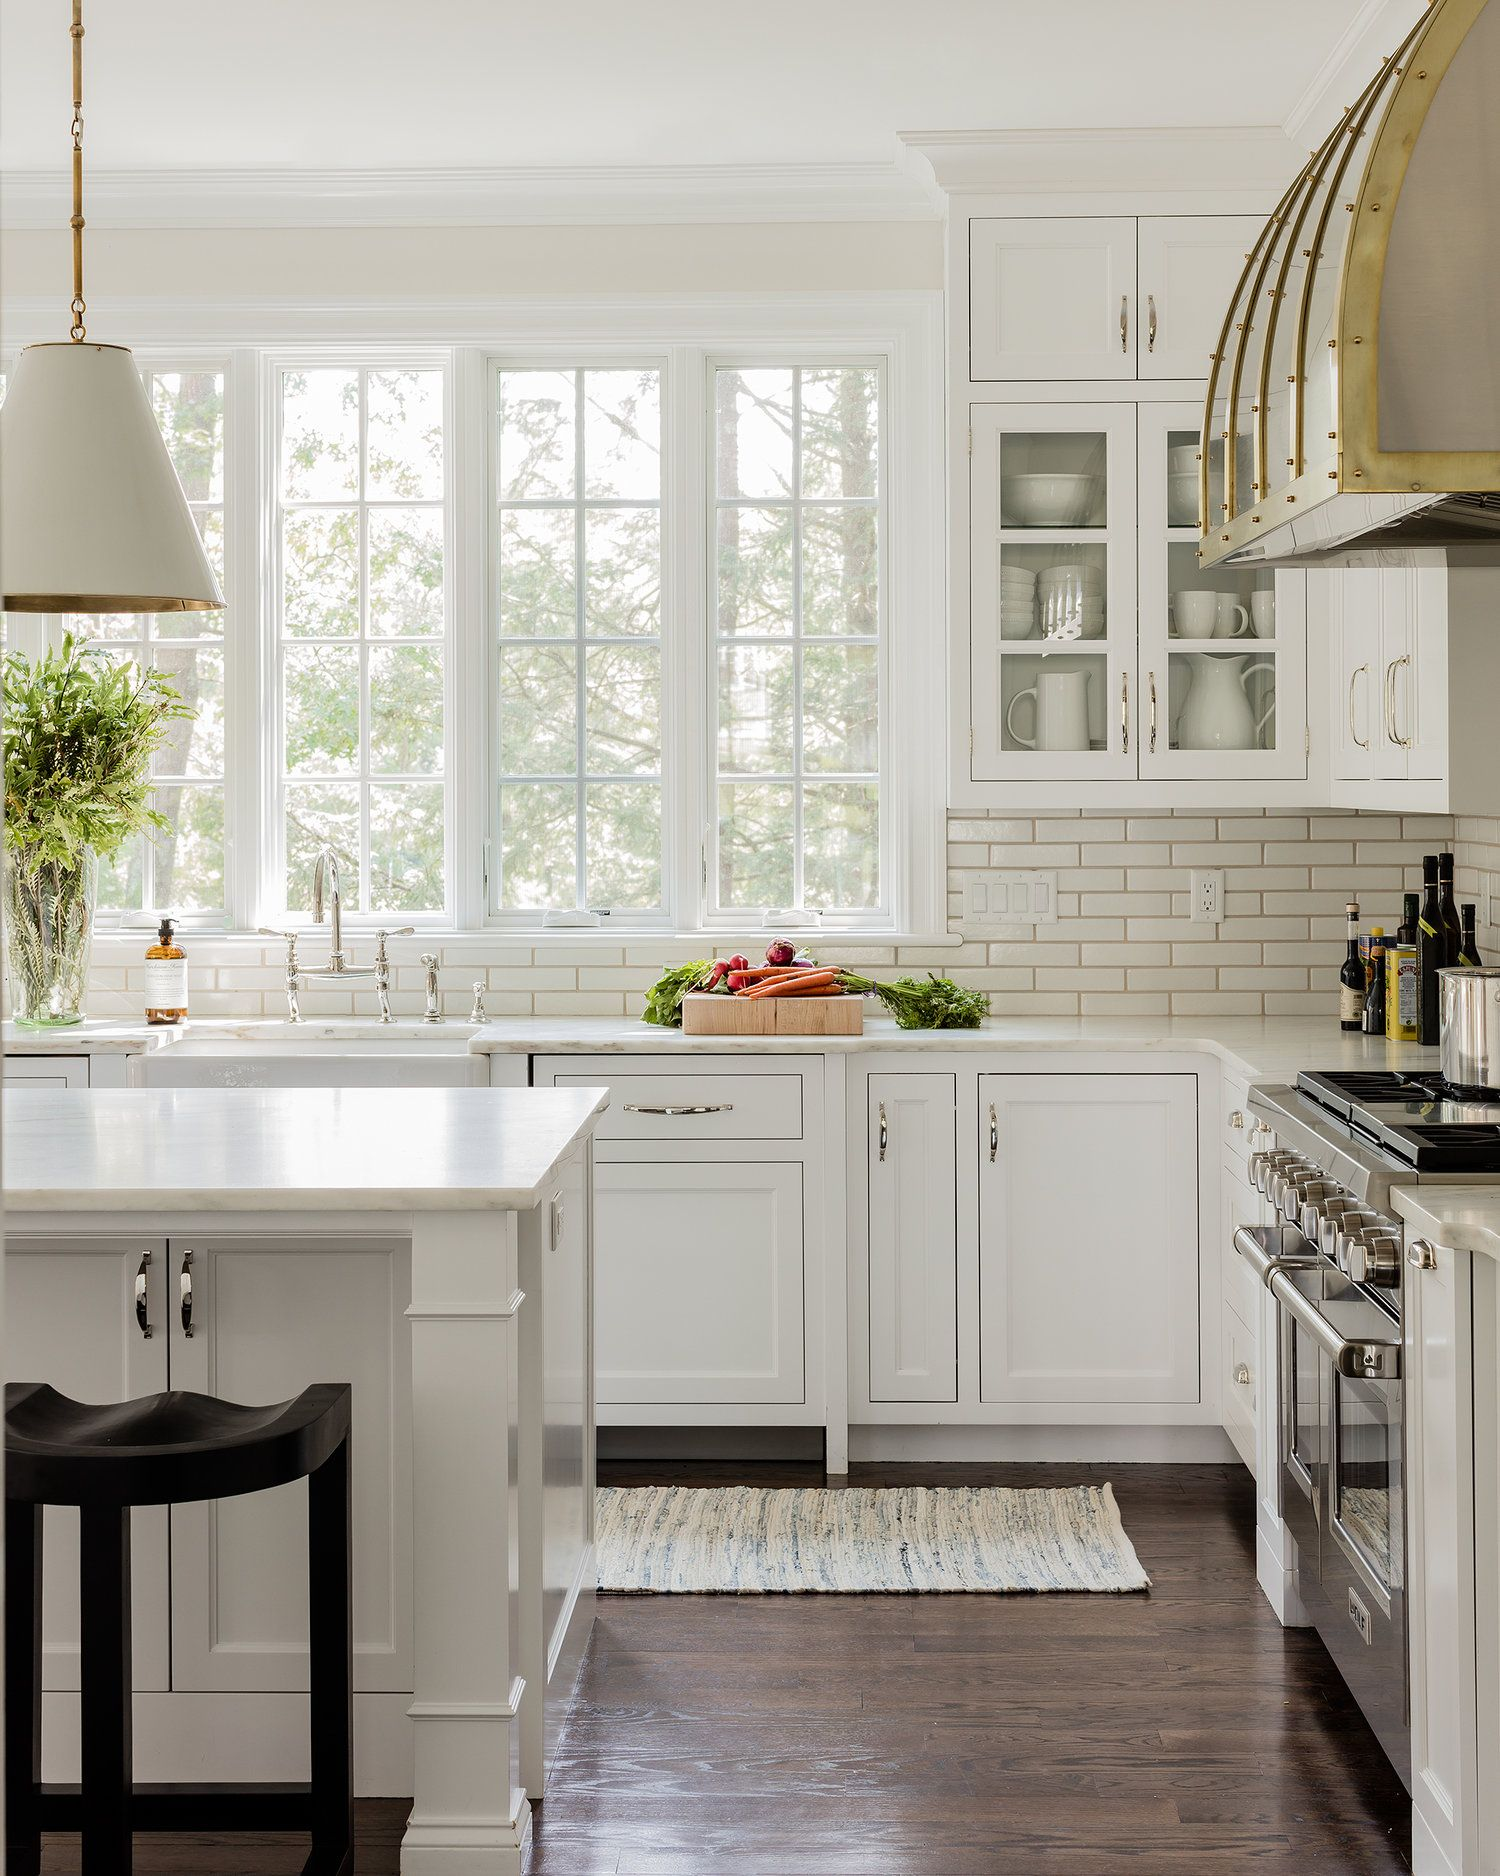 Big Window Over Kitchen Sink Classic White Kitchen Interior Design Kitchen Kitchen Design